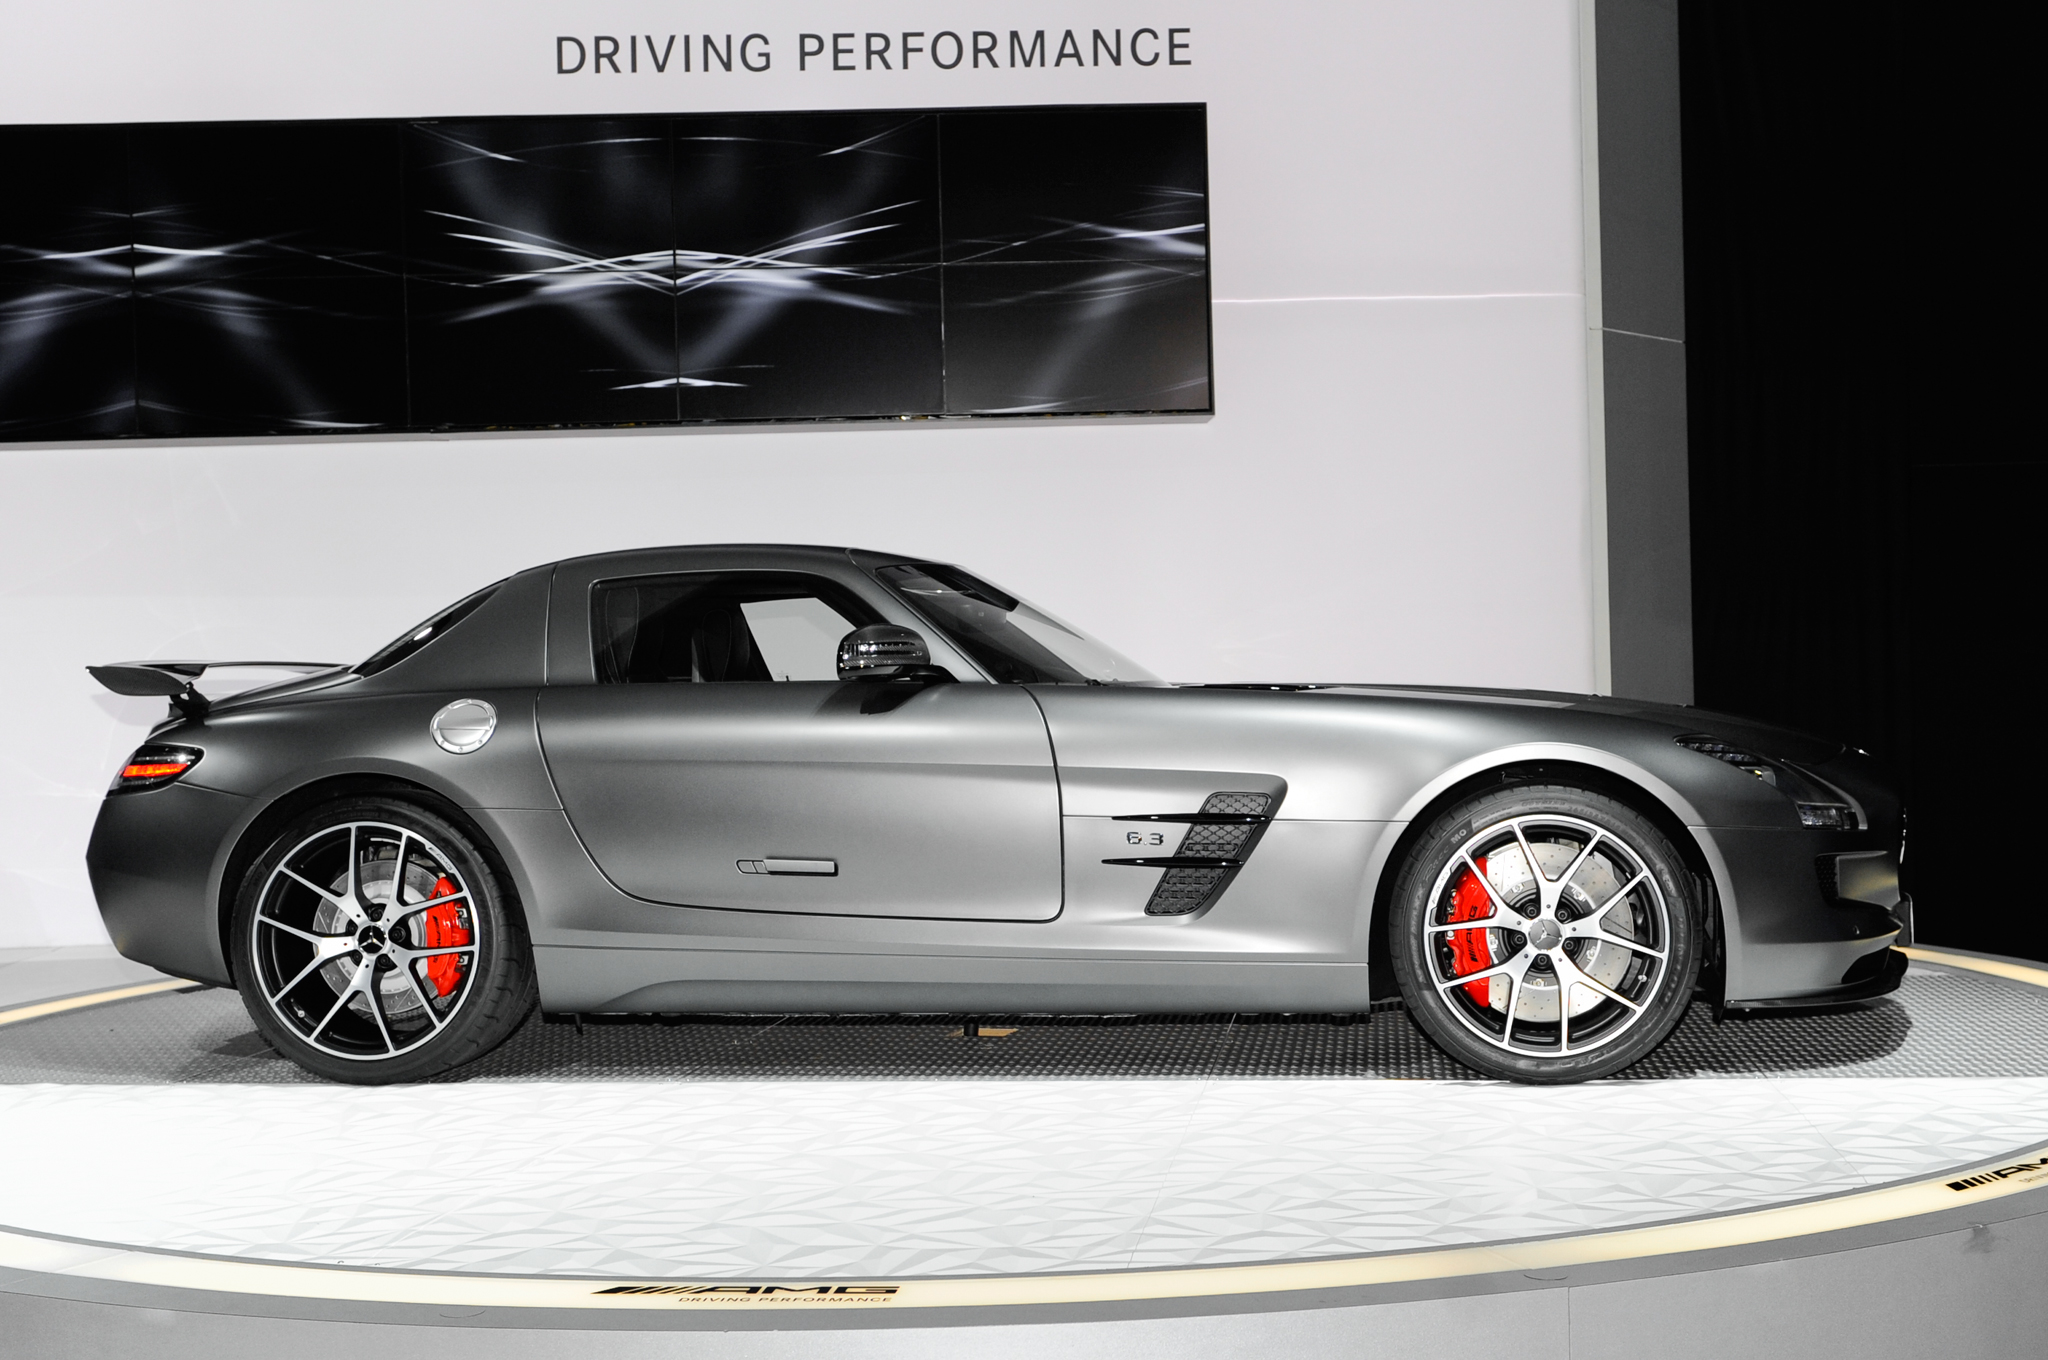 2015 mercedes benz sls amg gt final edition image 19 for 2015 mercedes benz sls amg